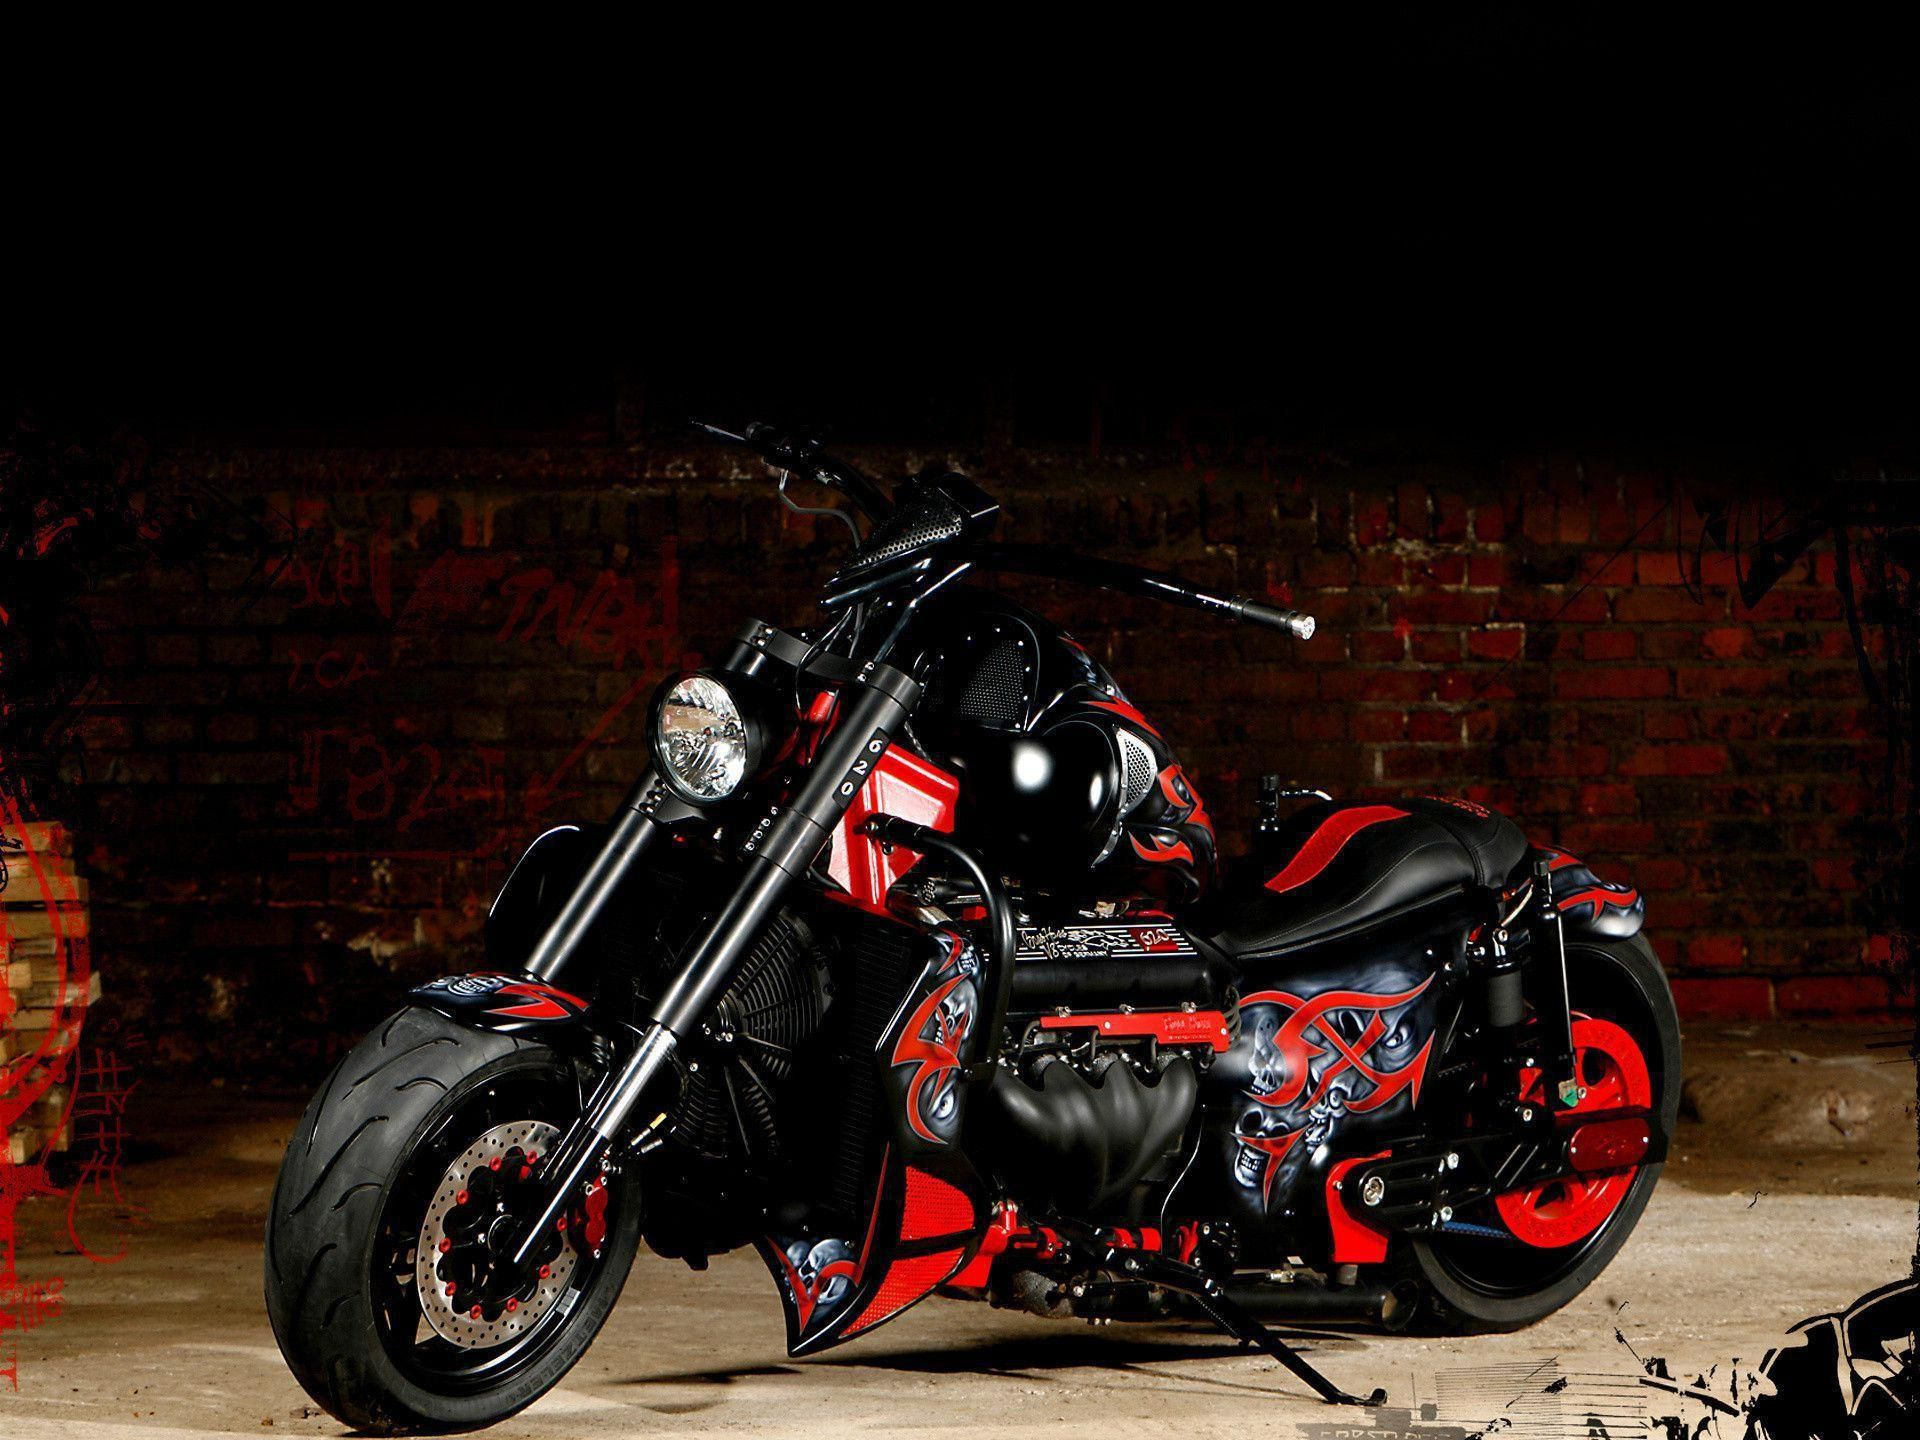 American Chopper High Definition Wallpapers